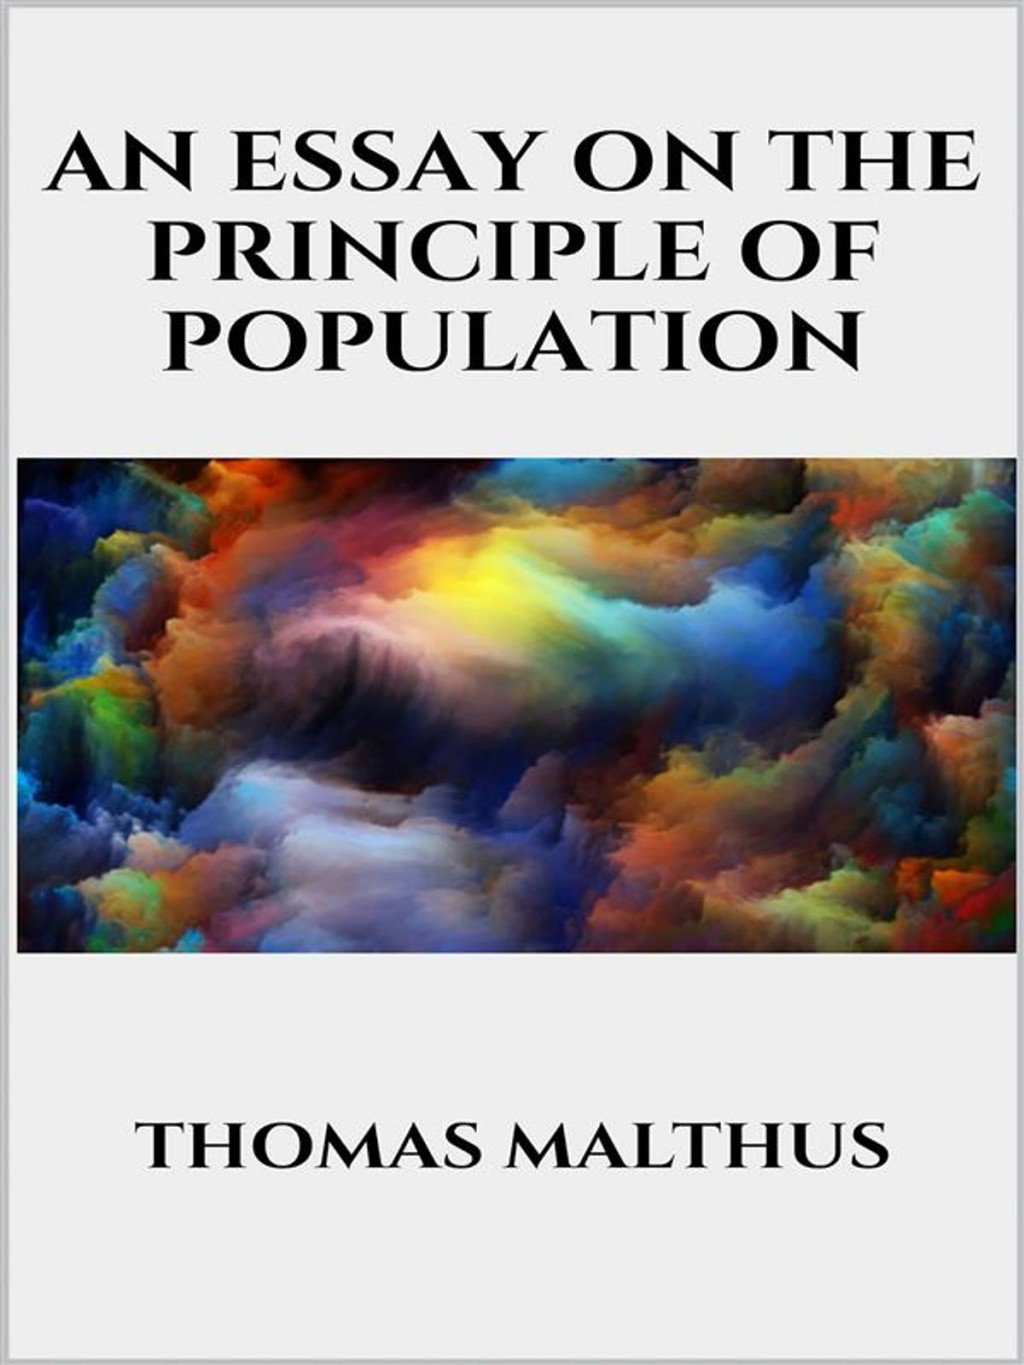 015 Thomas Malthus An Essay On The Principle Of Population Marvelous Summary Analysis Argued In His (1798) That Large